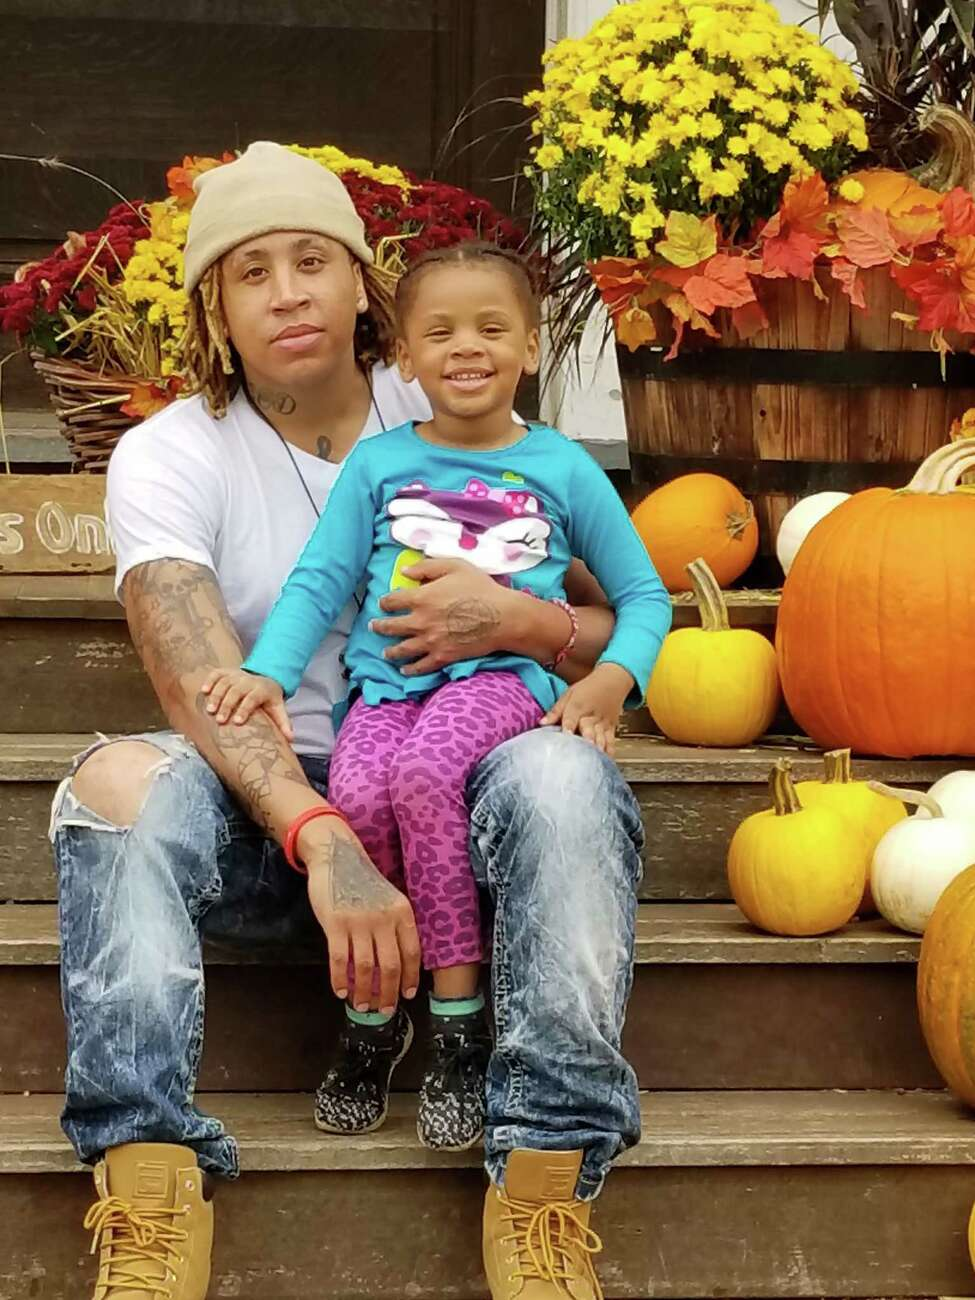 Raolik Walls, left, and his daughter, Zaylii.